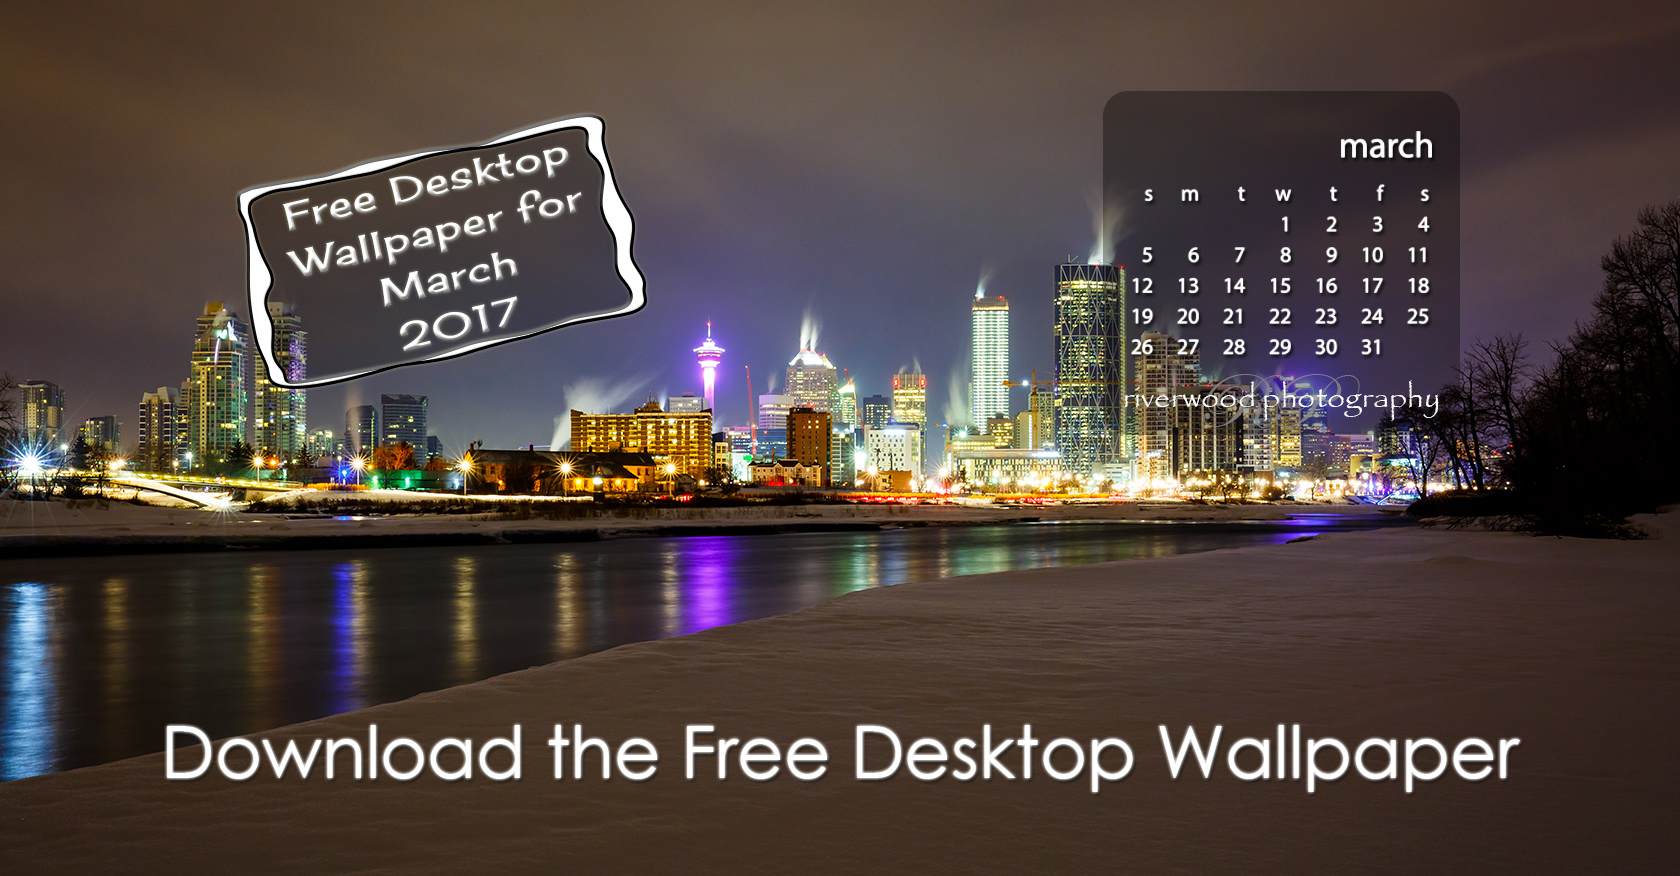 Free Desktop Wallpaper for March 2017